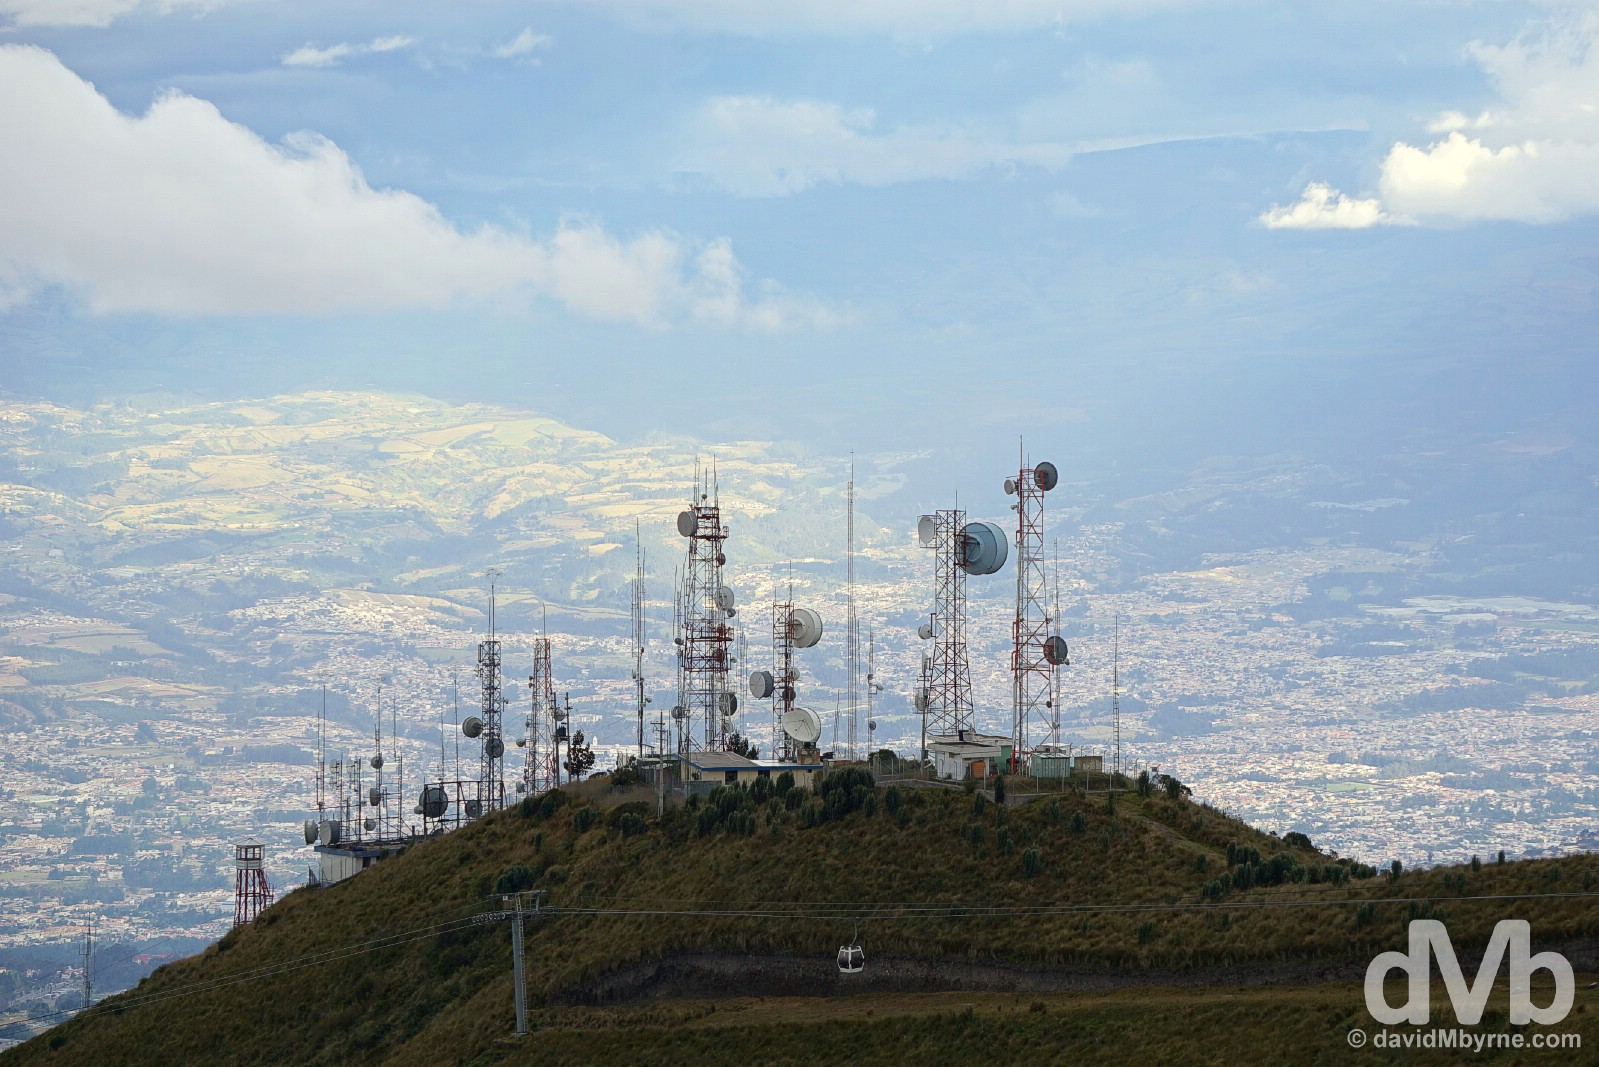 Teleferiqo on Cruz Loma overlooking Quito, Ecuador. July 5, 2015.